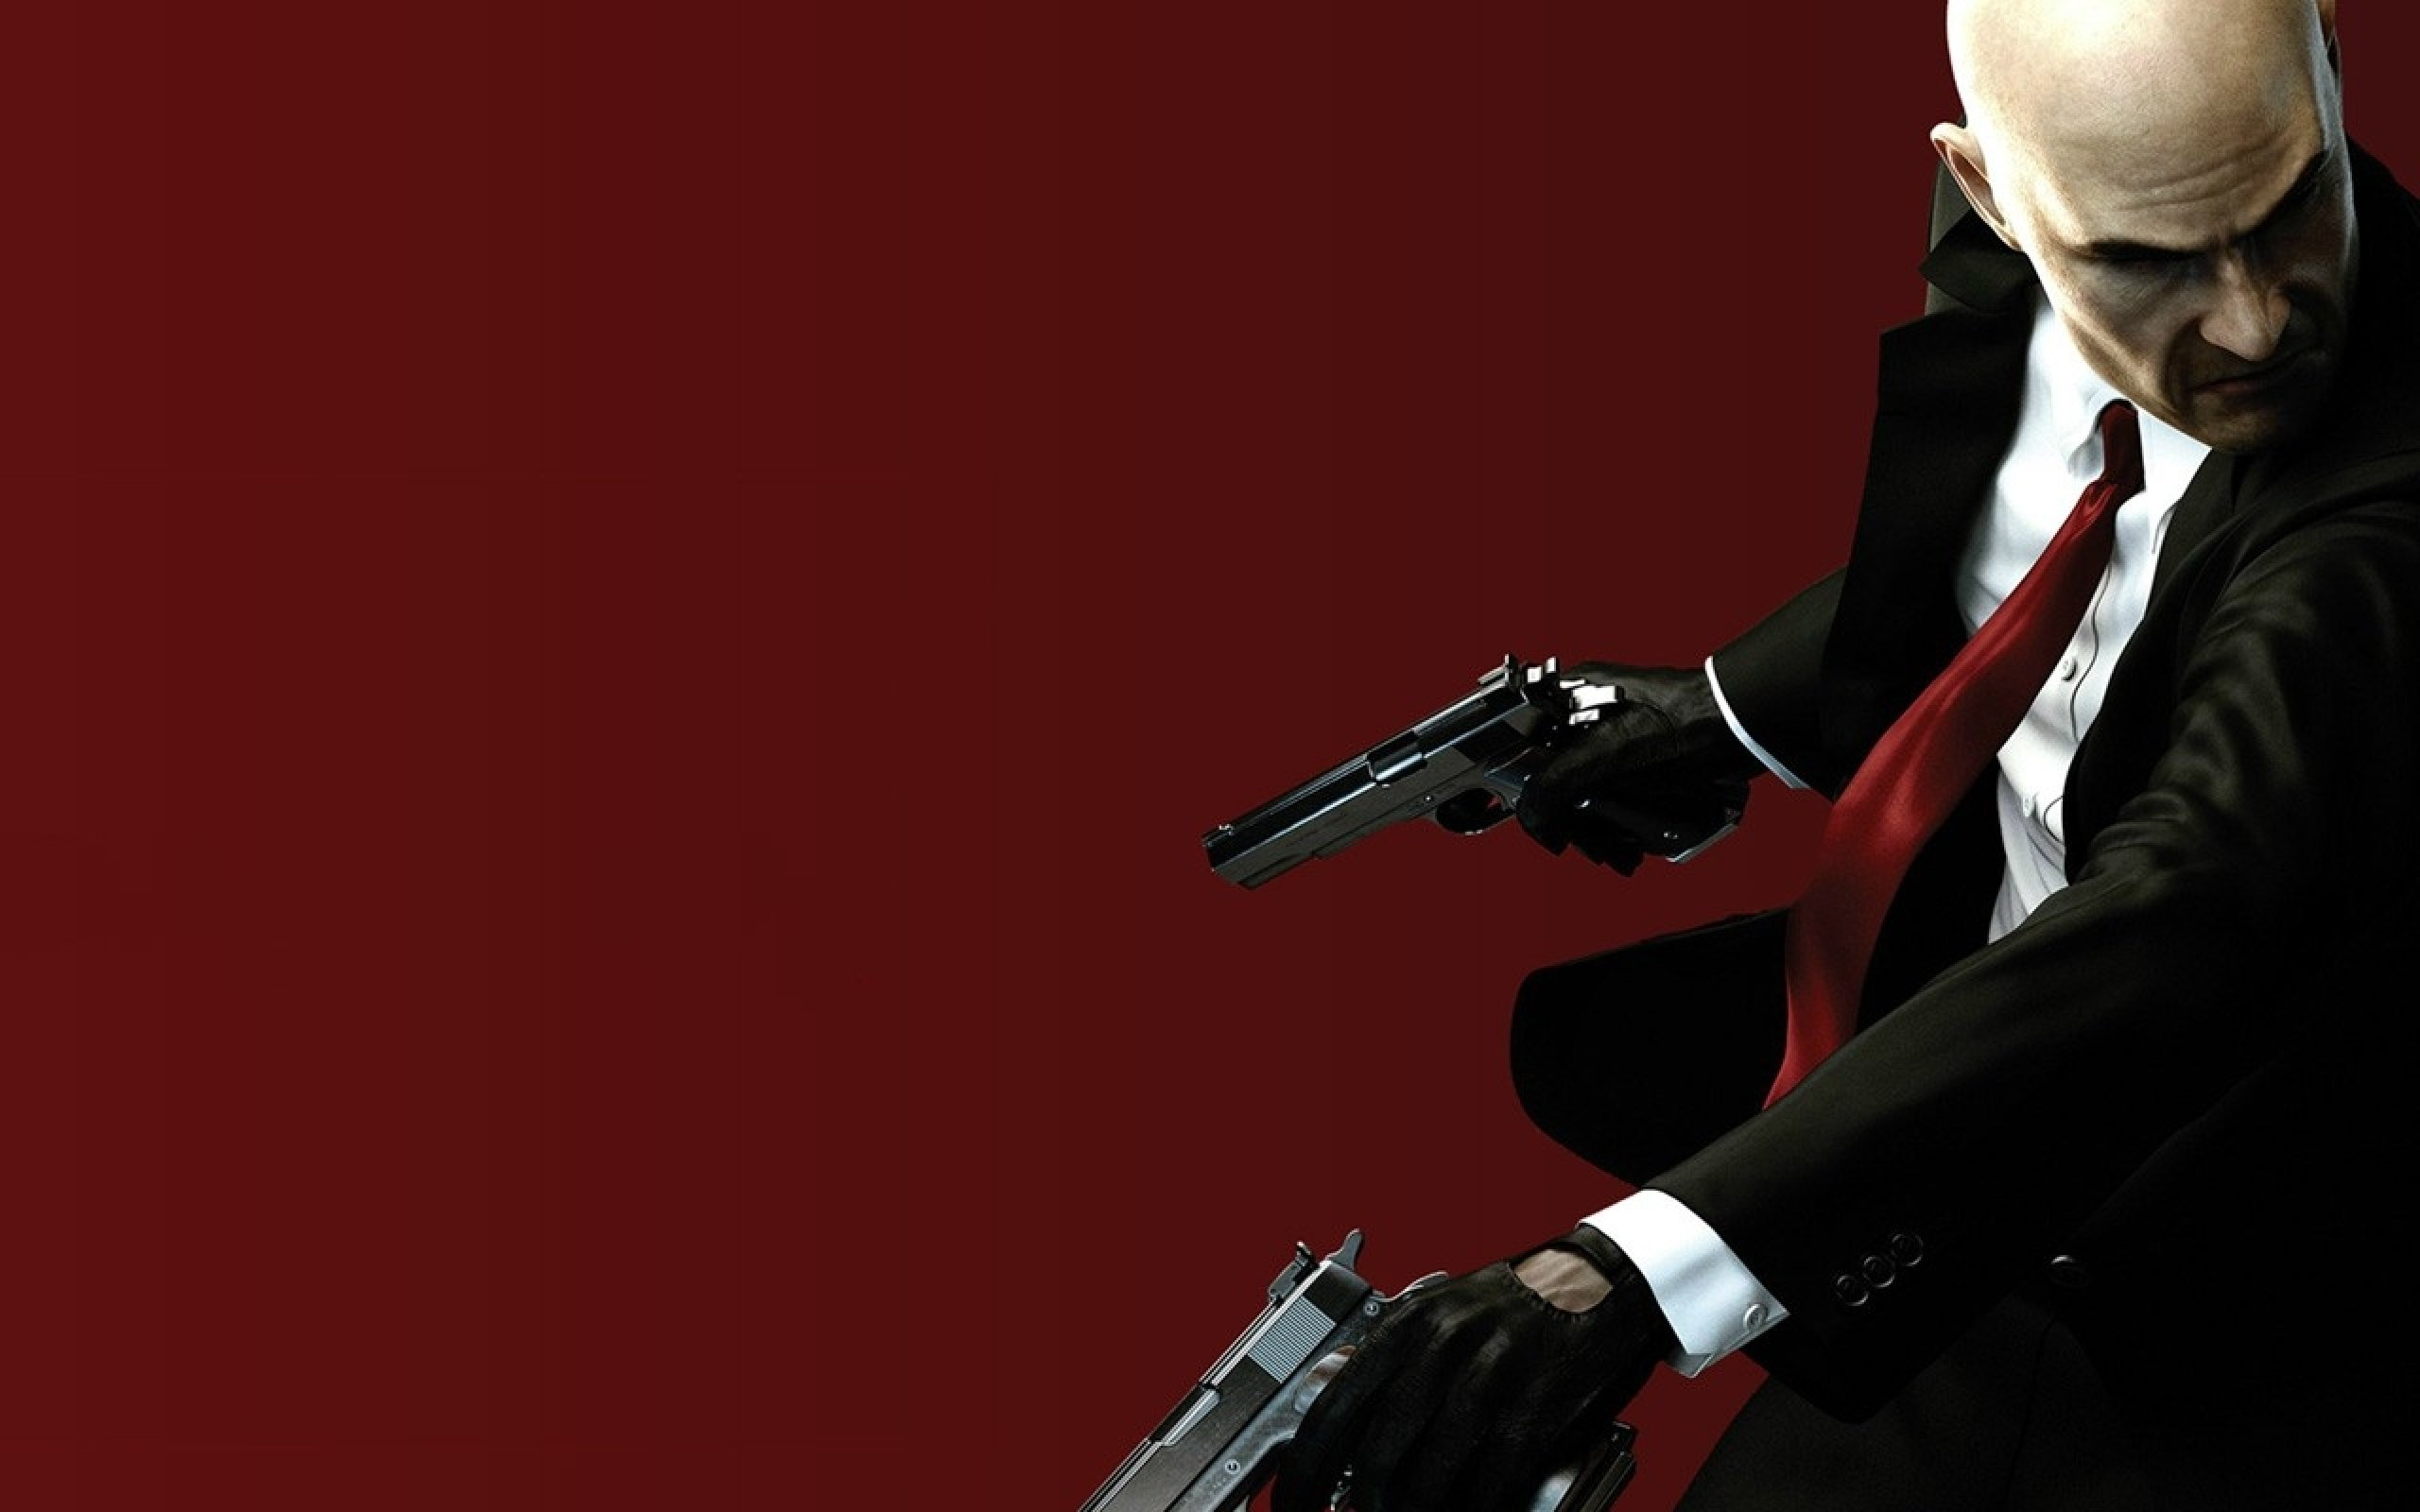 Hitman Agent 47 Wallpapers HD 2560x1600